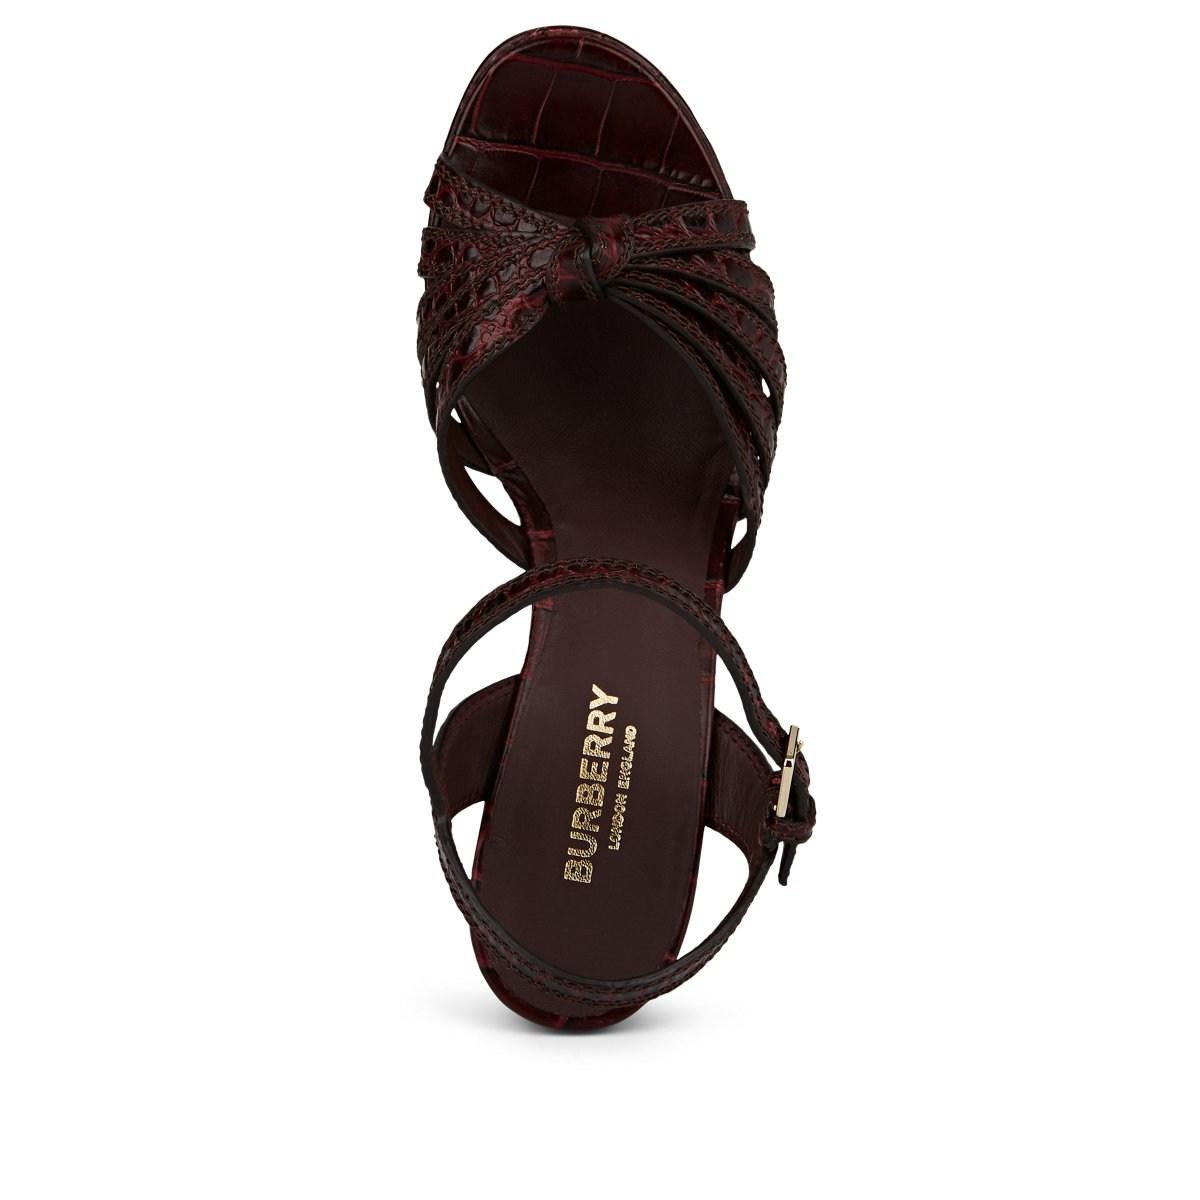 1d4cb7c966e3 Burberry - Brown Margate Stamped Leather Platform-wedge Sandals - Lyst.  View fullscreen